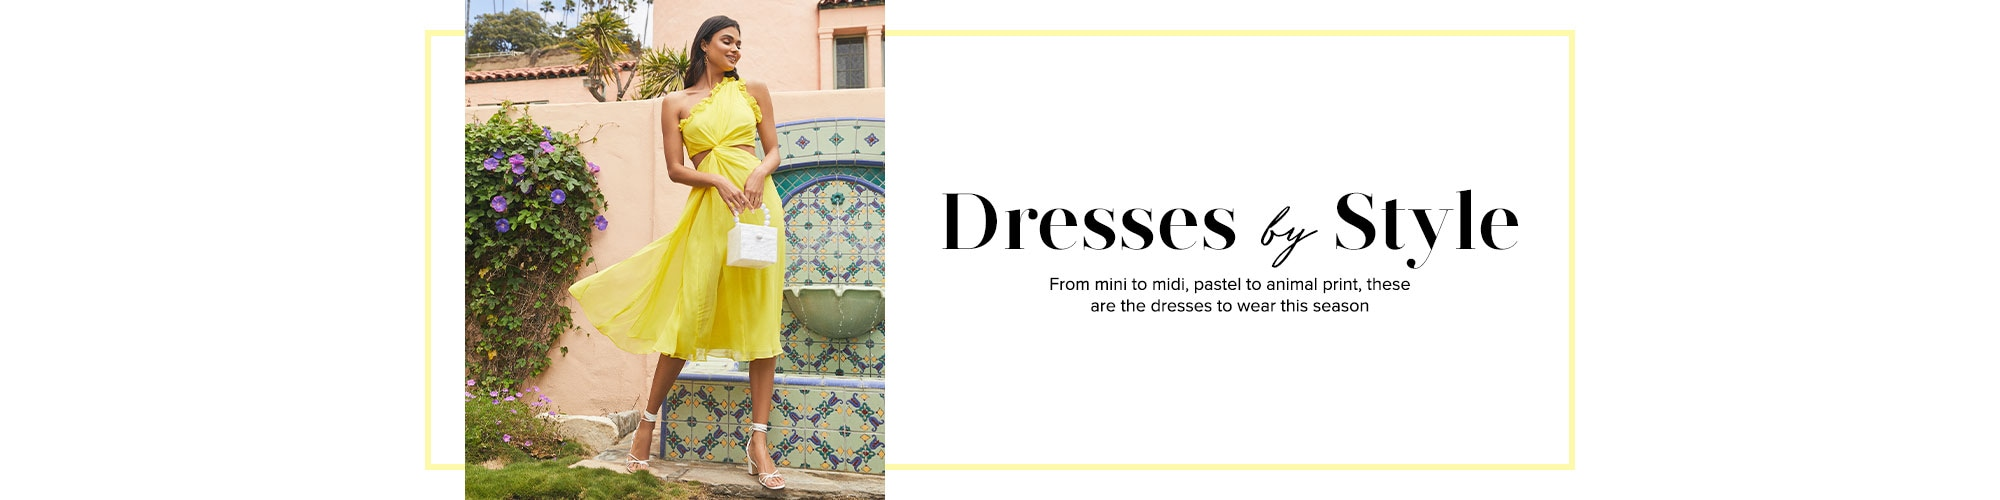 Dresses by Style.  From mini to midi, pastel to animal print, these are the dresses to wear this season. Shop Dresses.